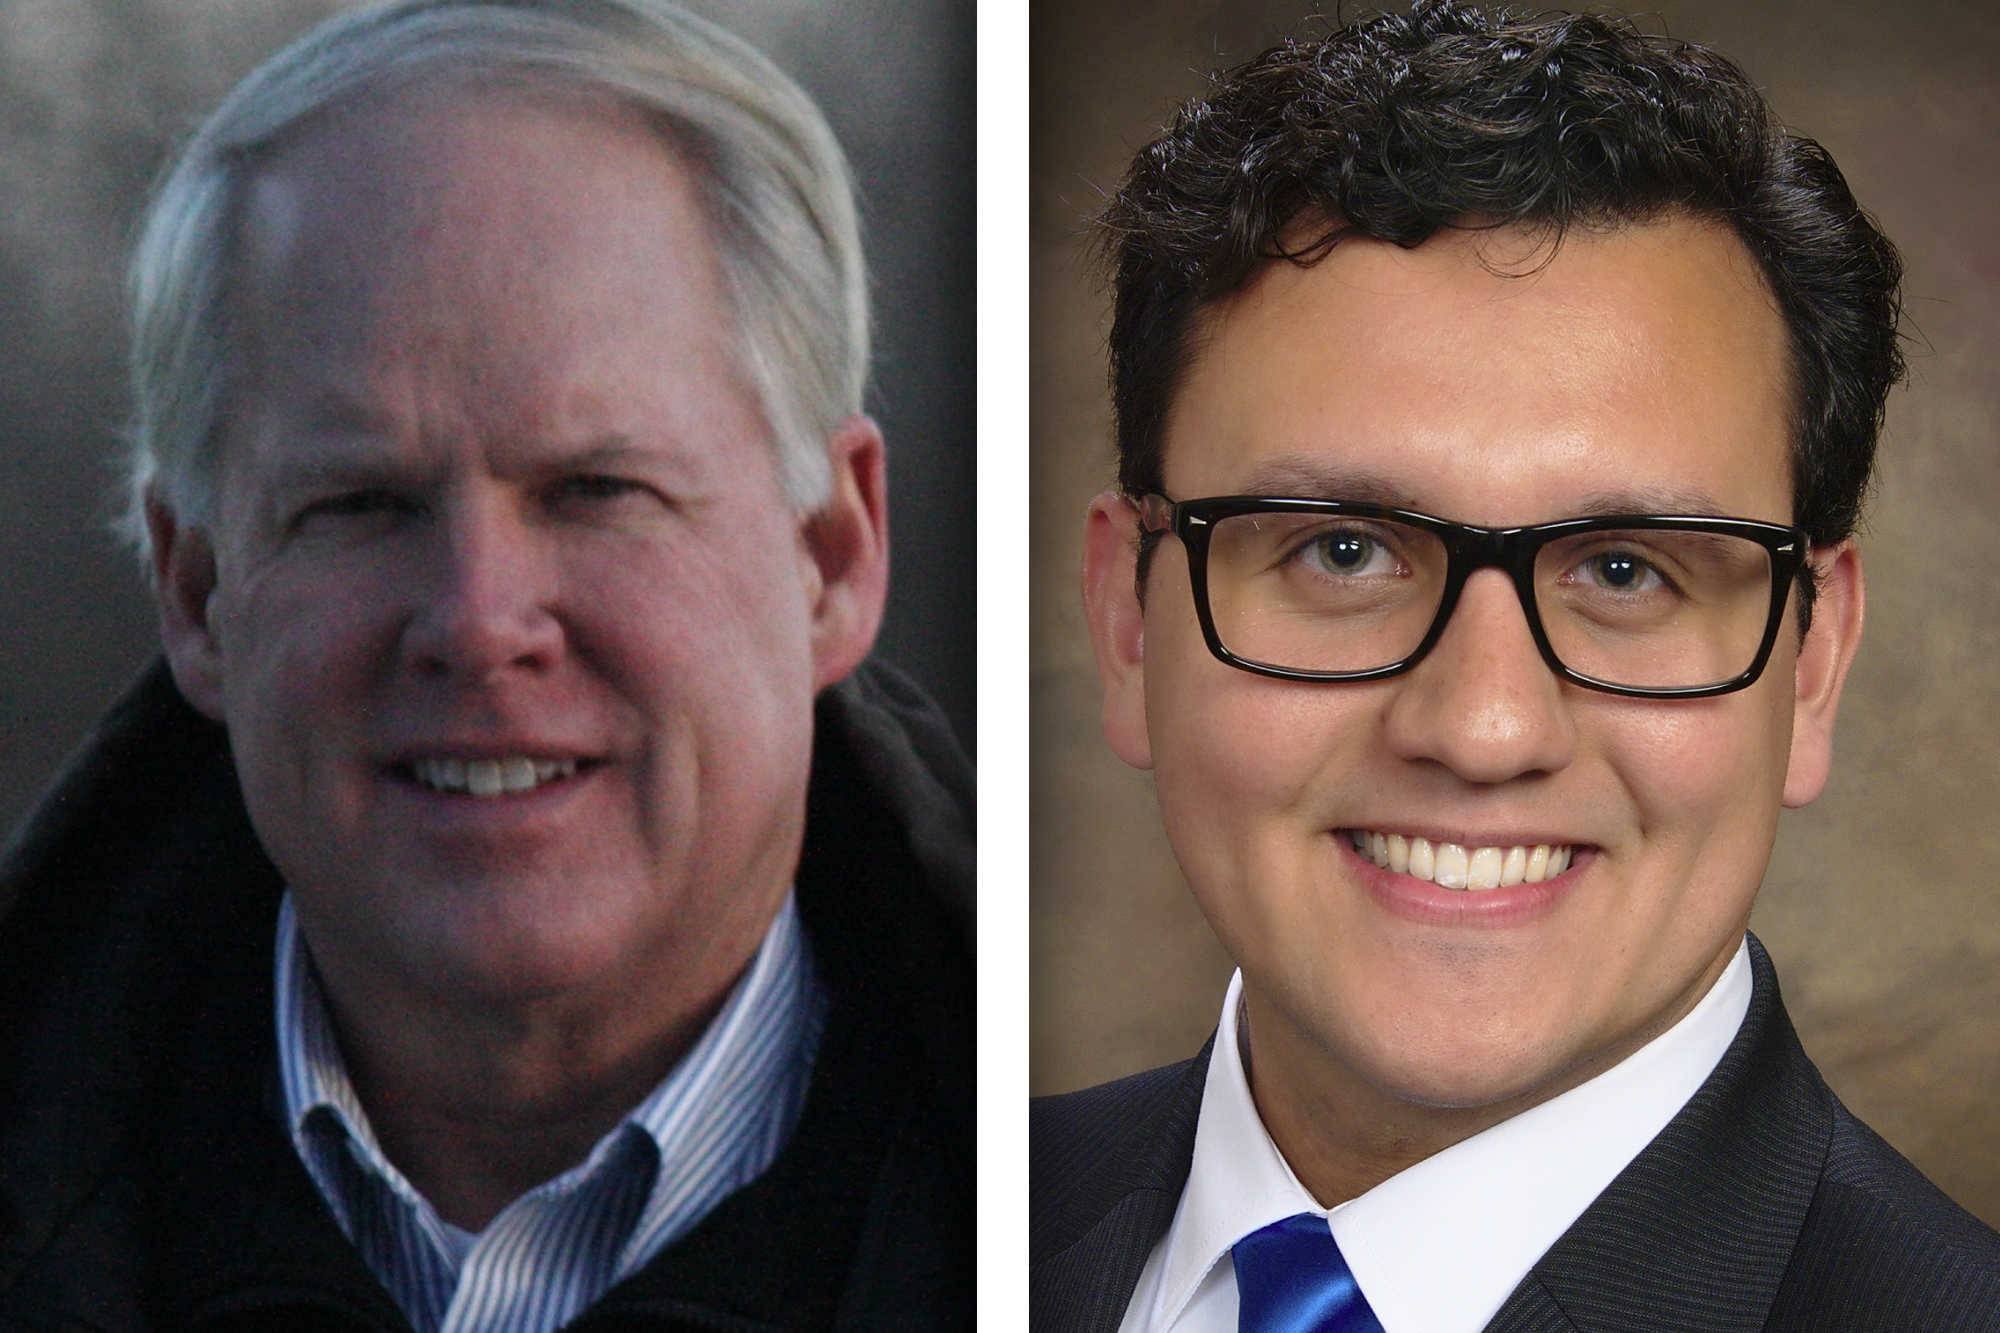 Republican Andrew Frasz, left, and Democrat Nicolas Jimenez are candidates for Kane County Board, District 18.